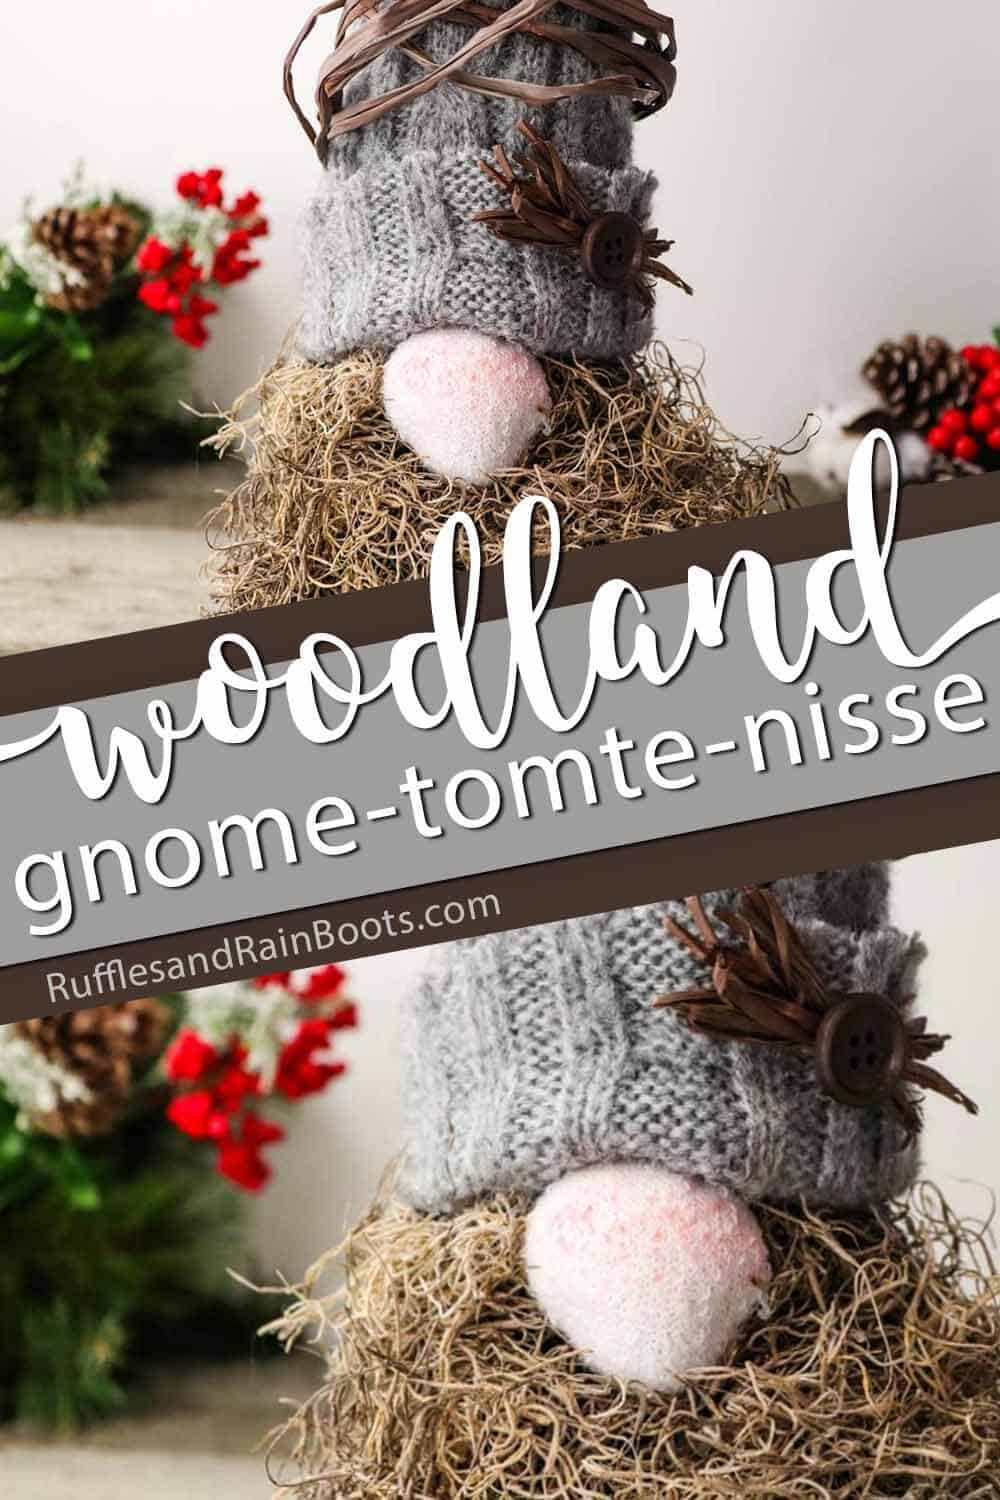 photo collage of forest gnome easy gnome tutorial for a rustic gnome with text which reads woodland gnome tomte nisse